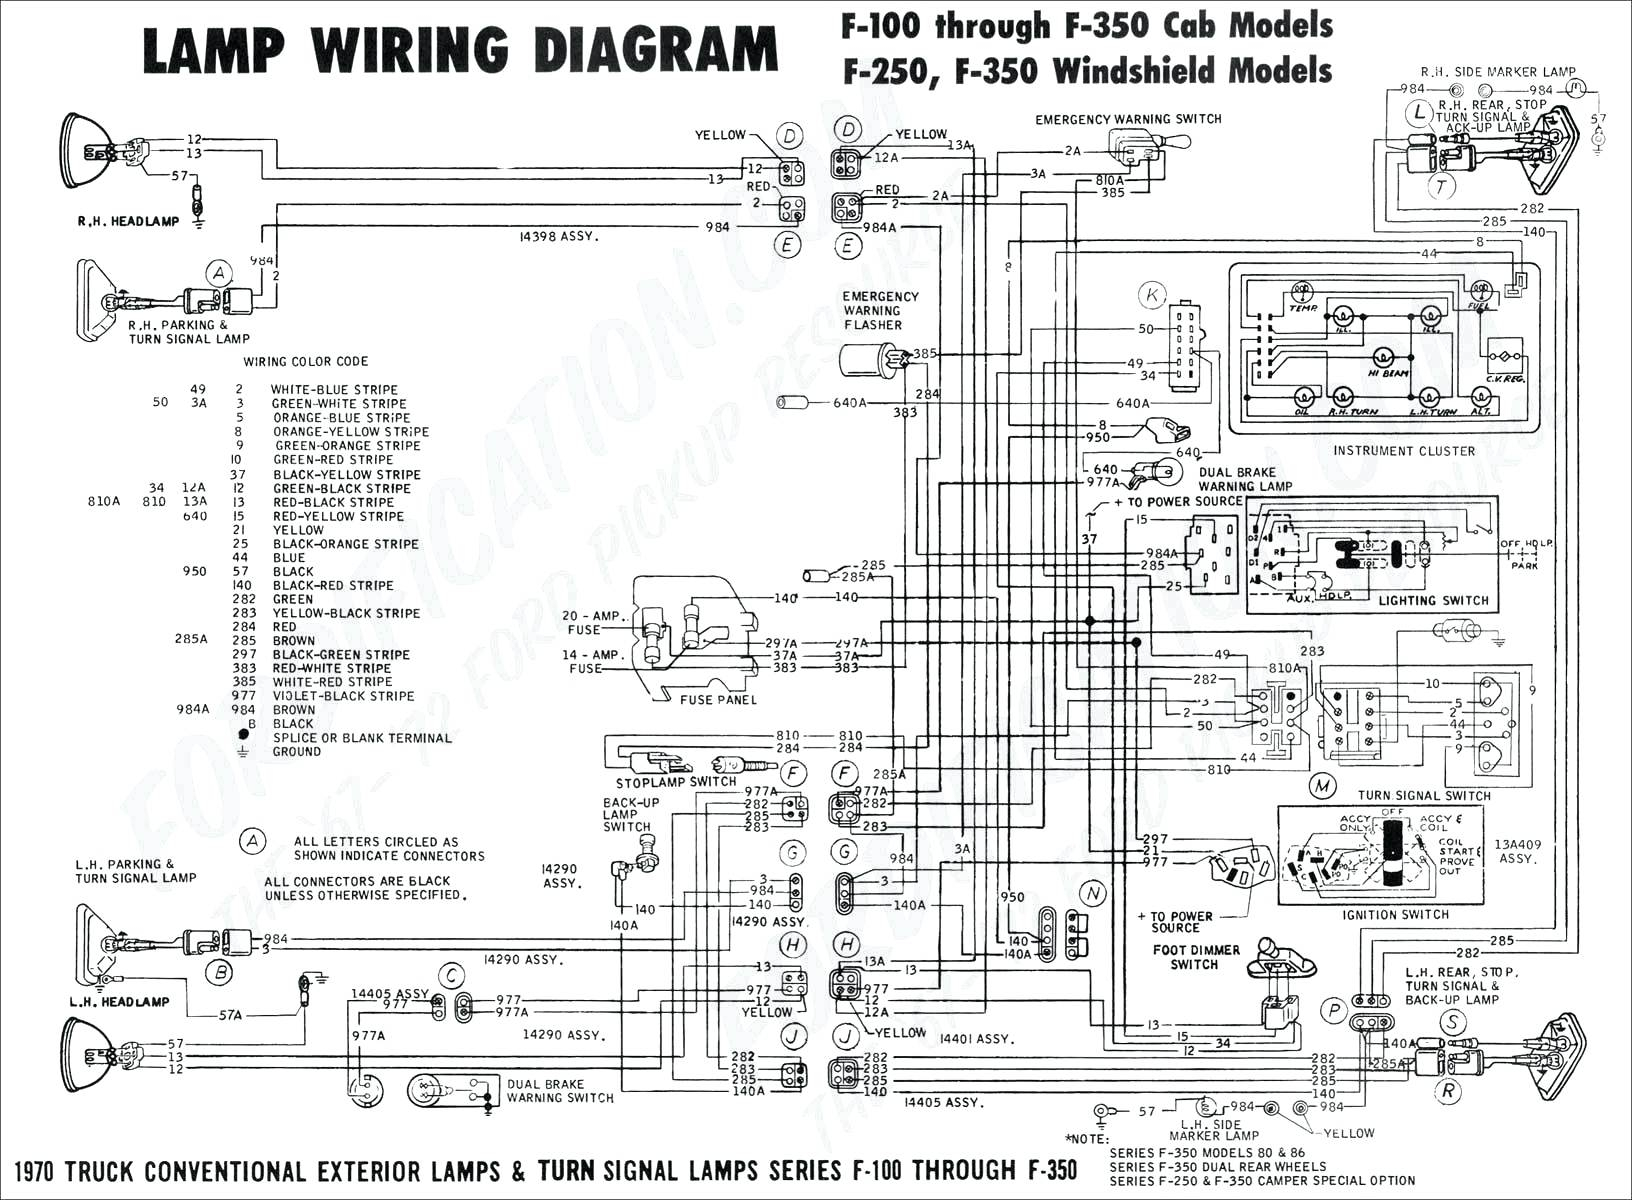 hight resolution of 2007 dodge caliber ac wiring diagram wiring diagram toolbox dodge caliber alternator wiring diagram dodge caliber wiring